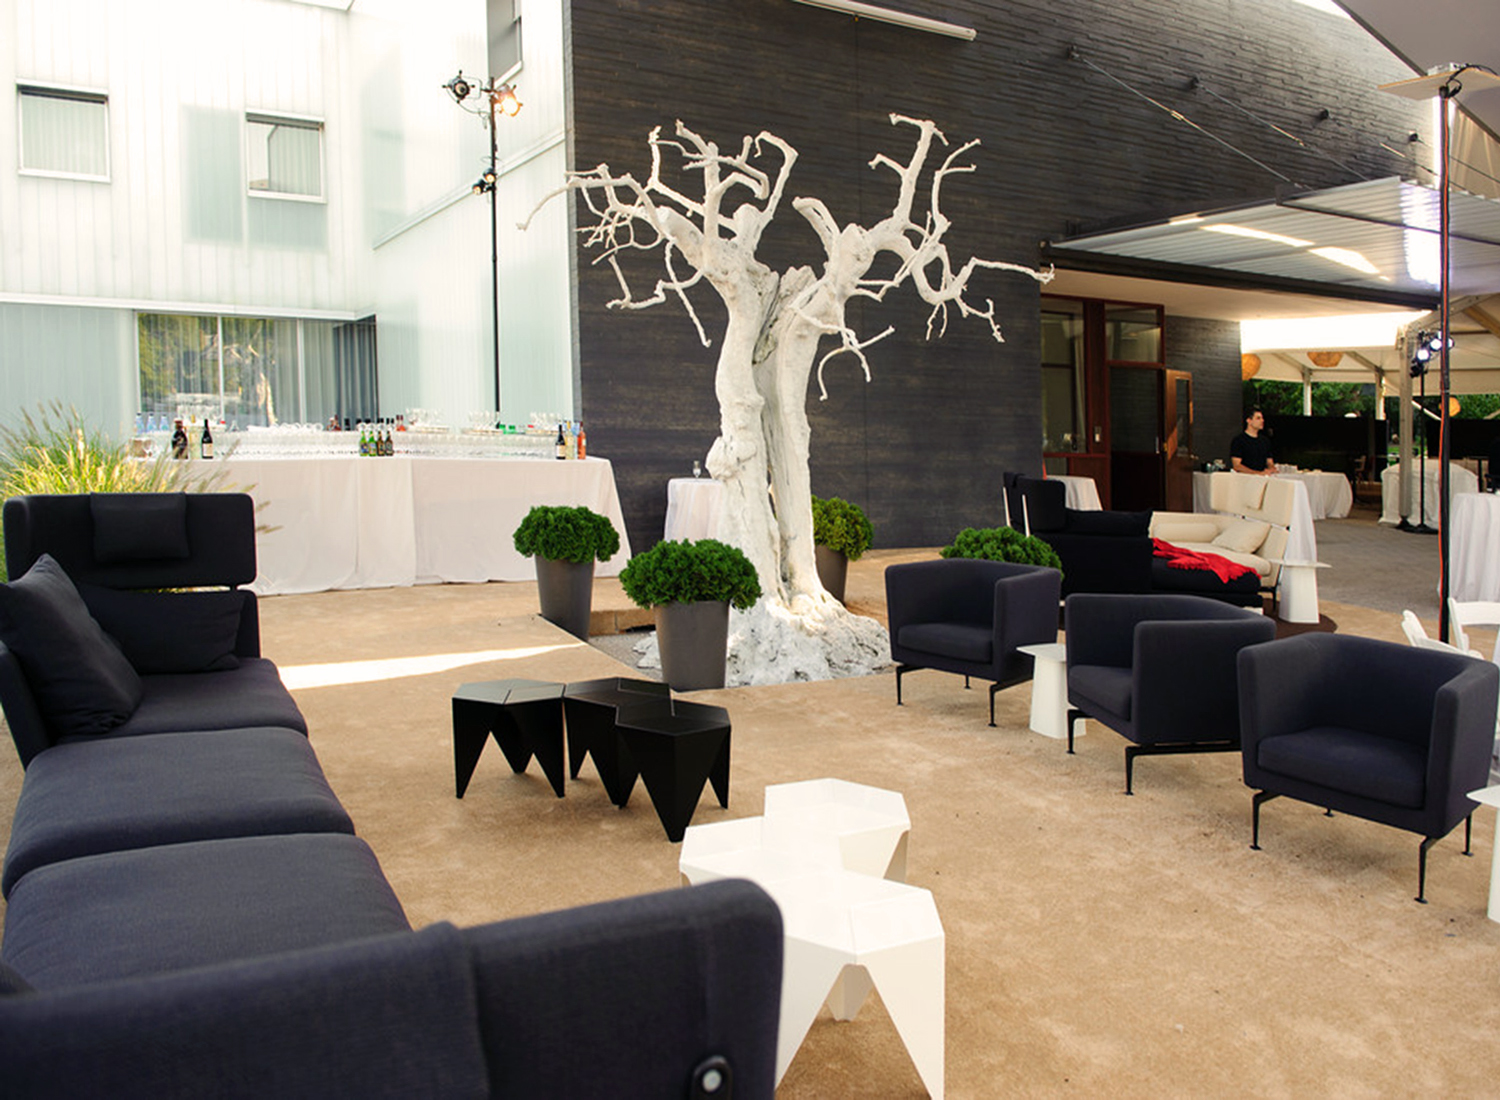 Vitra Lounge at the Swiss Embassy Soirée Suisse 2011, DC - USA